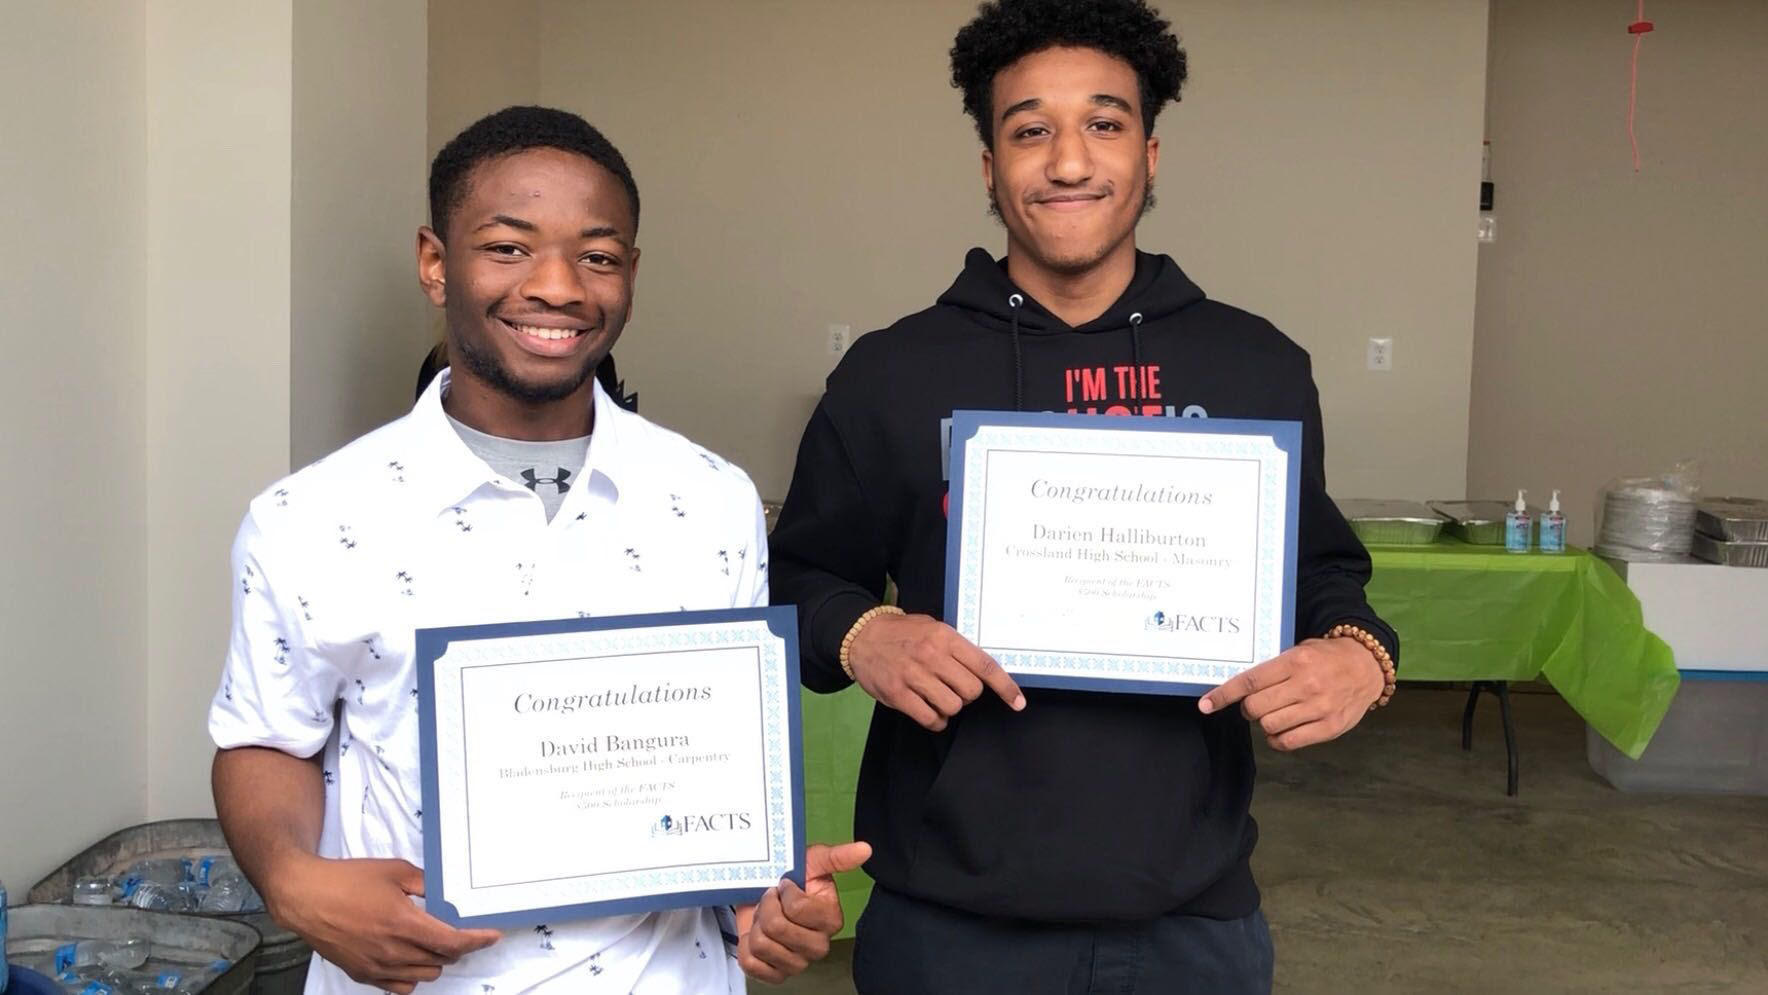 David Bangura and Darian Halliburton, winners of $500 scholarships. (WTOP/Kristi King)